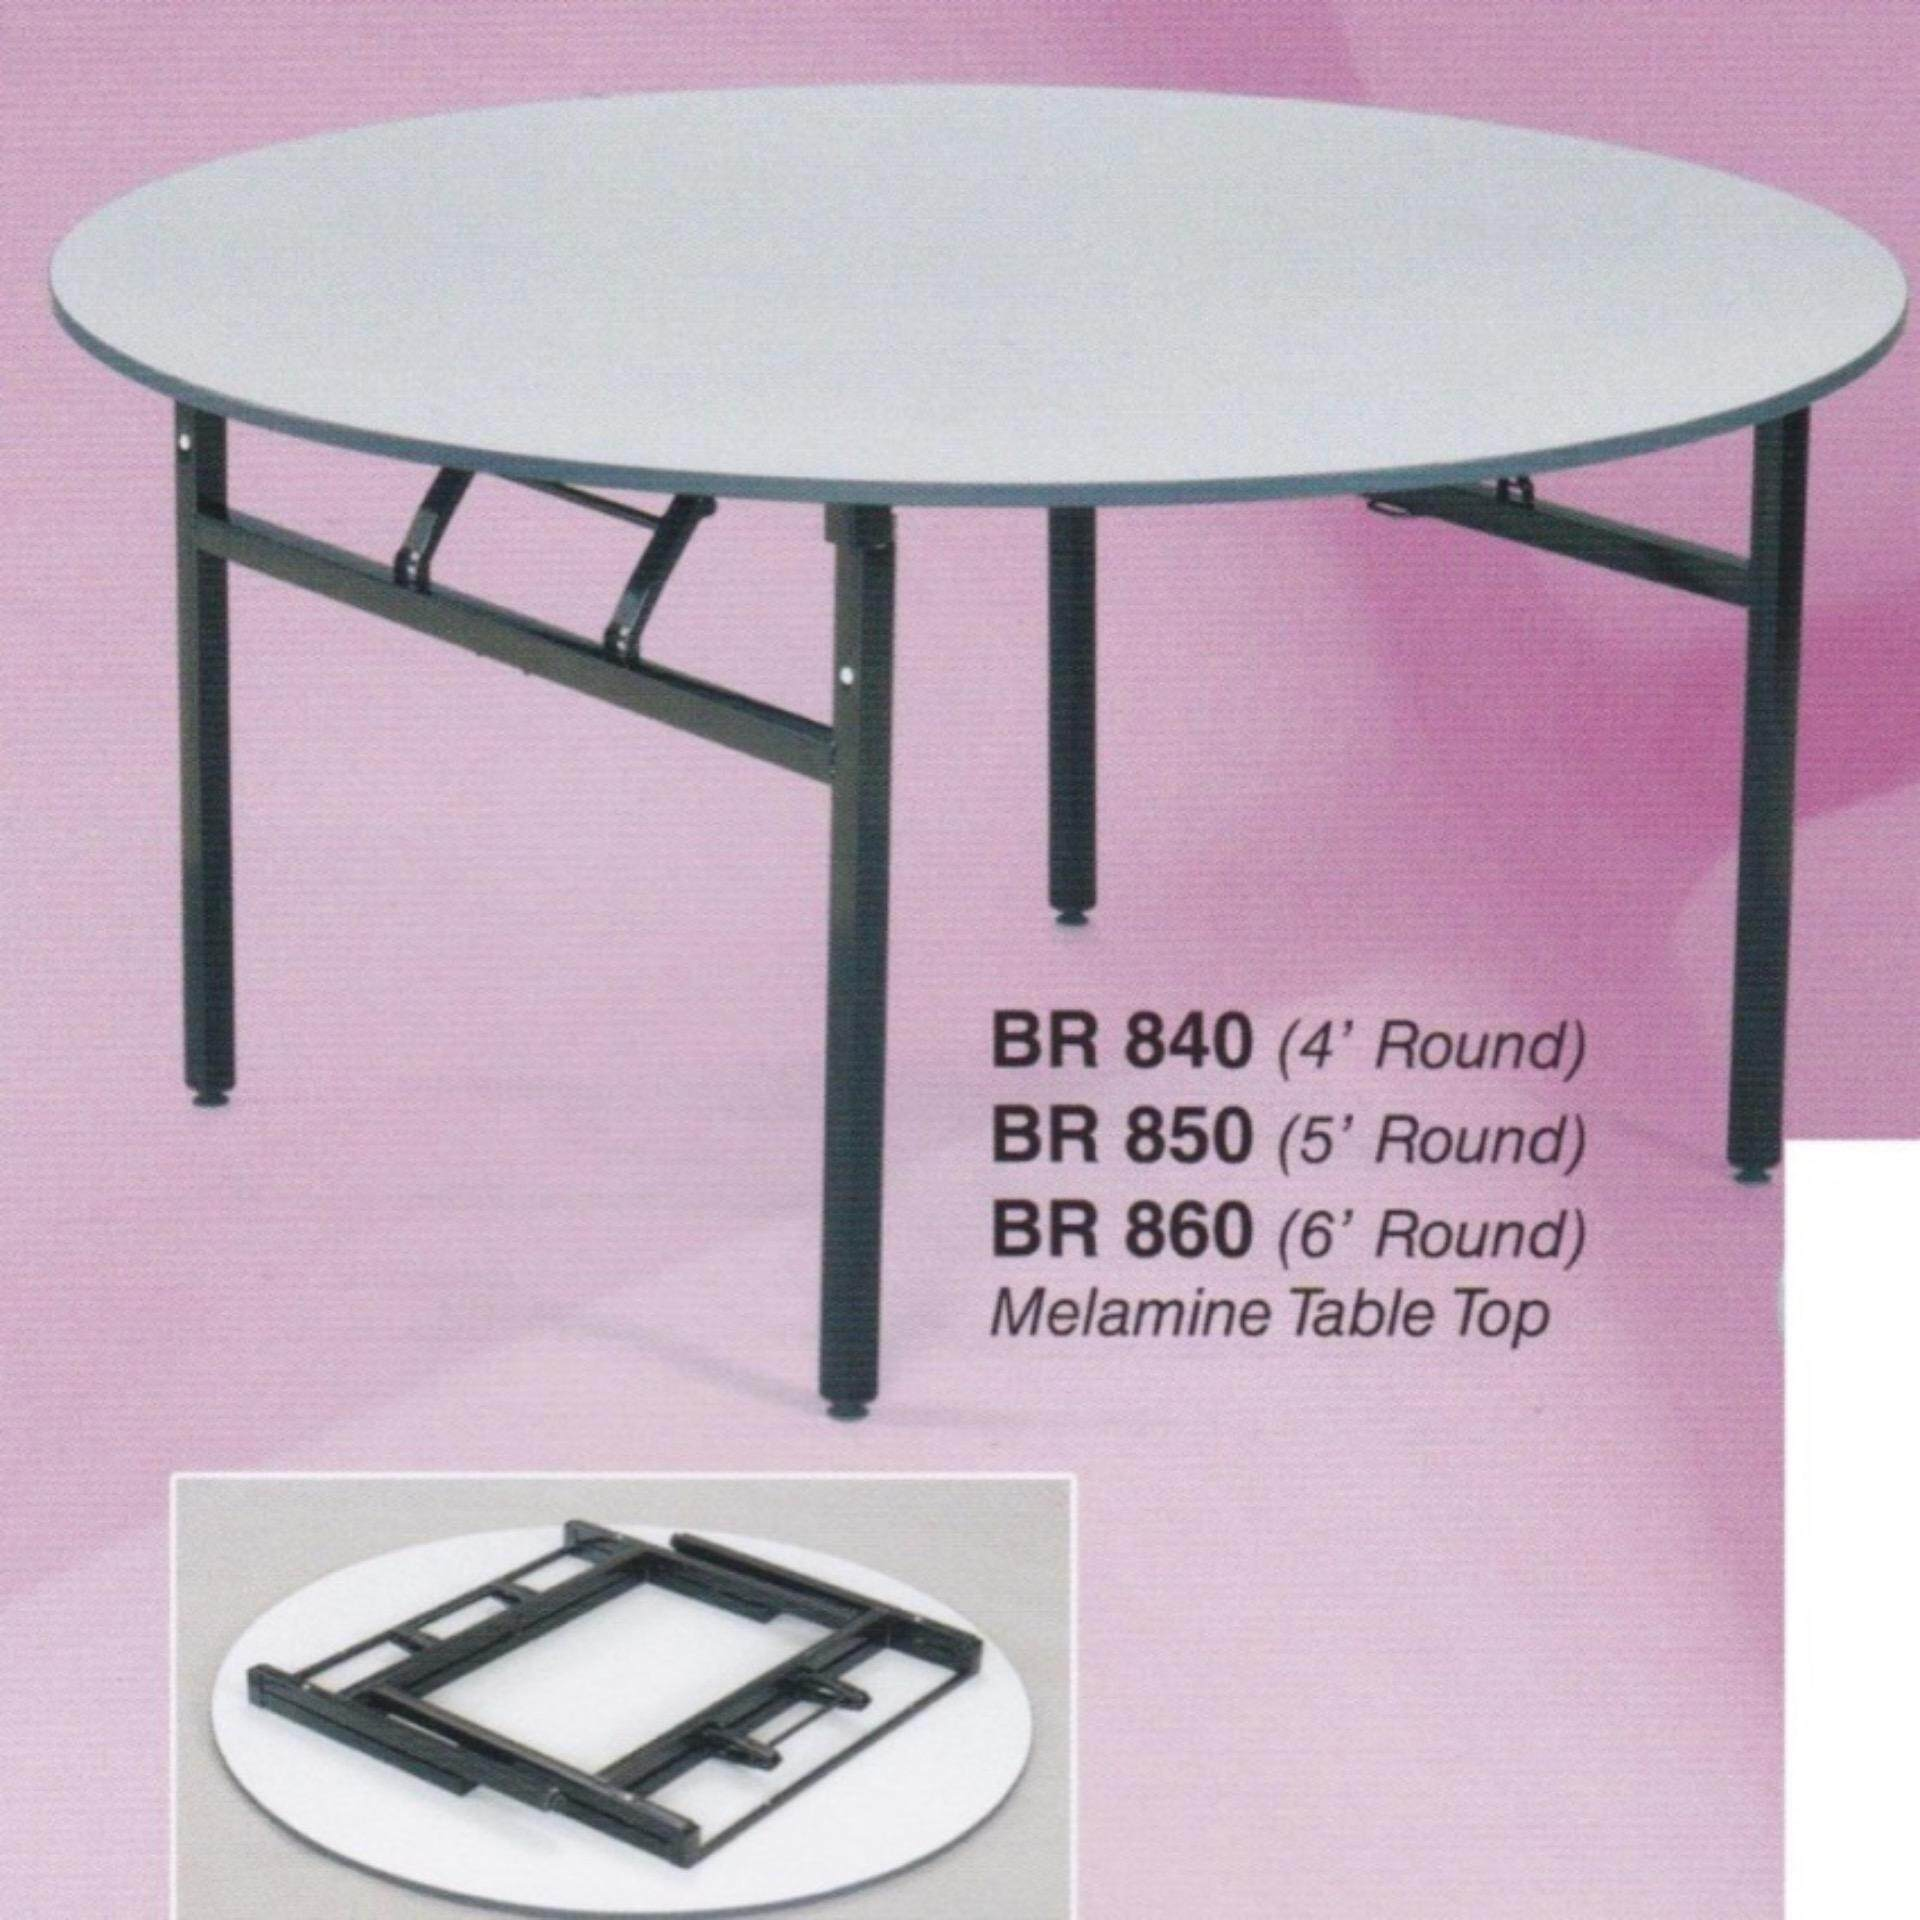 6-Feet Round Foldable Banquet Table With Thick Table Top L1800MM x W1800MM x H750MM